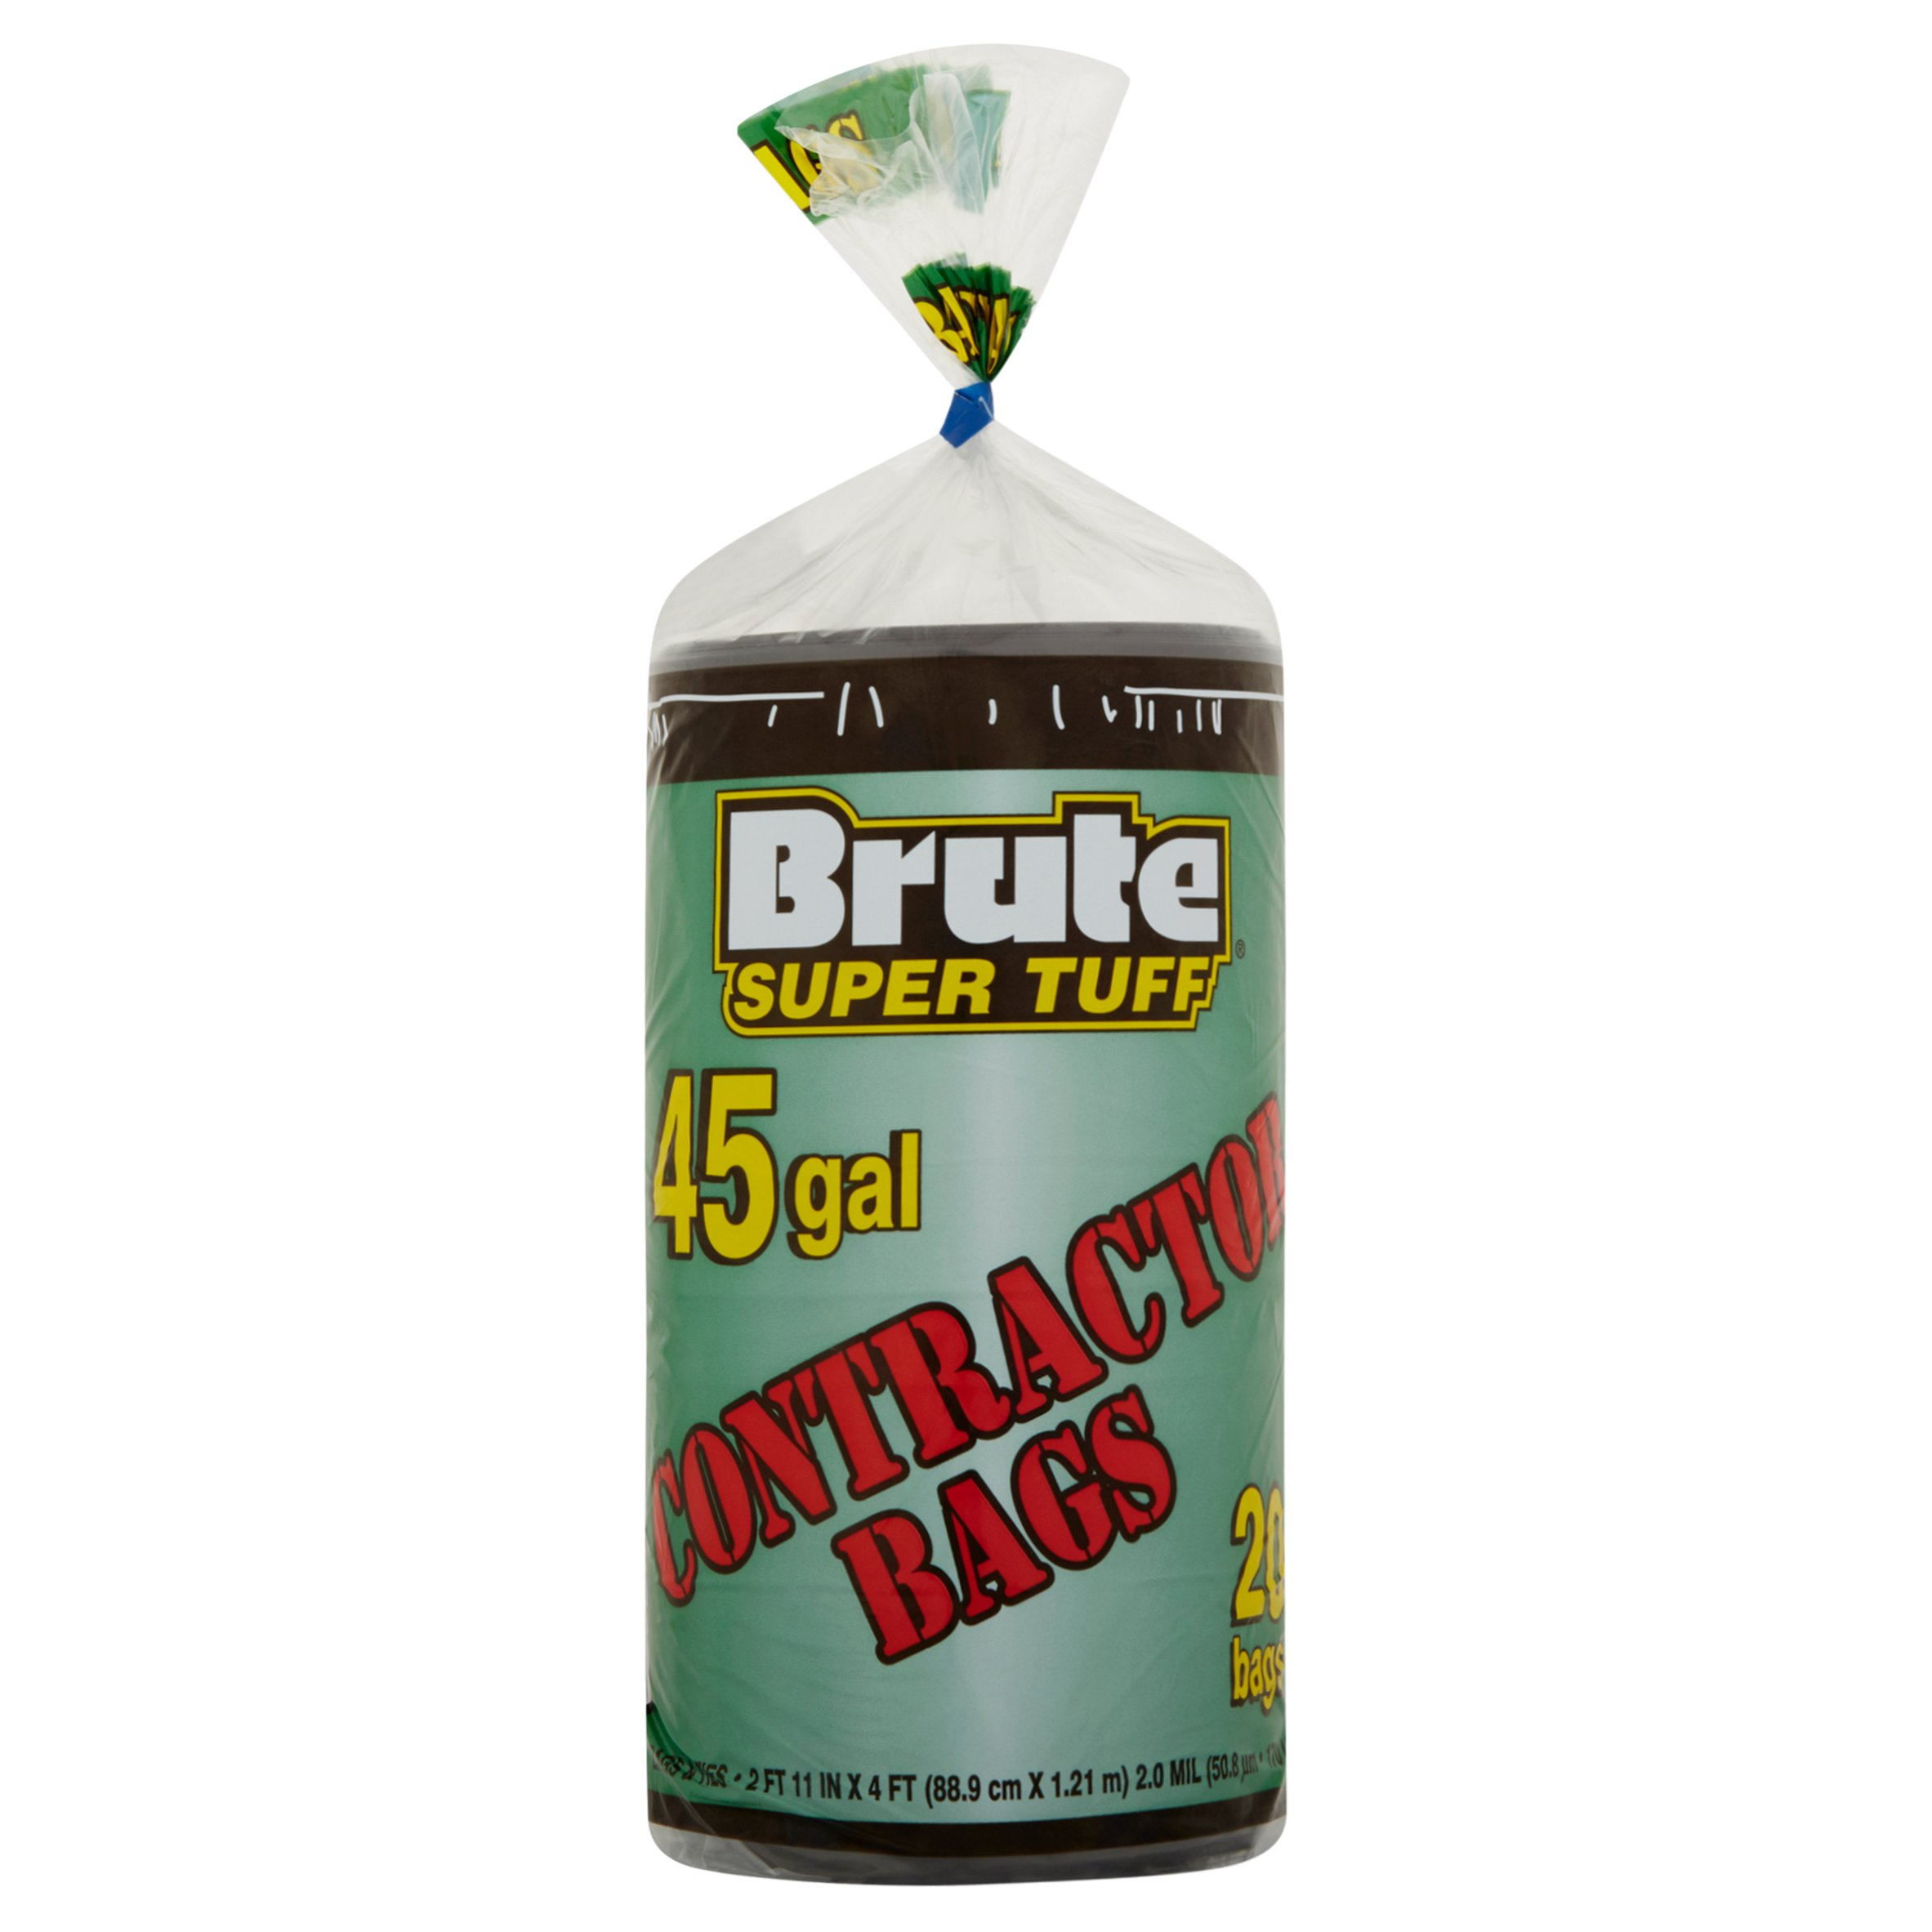 Brute Super Tuff 45gal Contractor Bags, 20 count